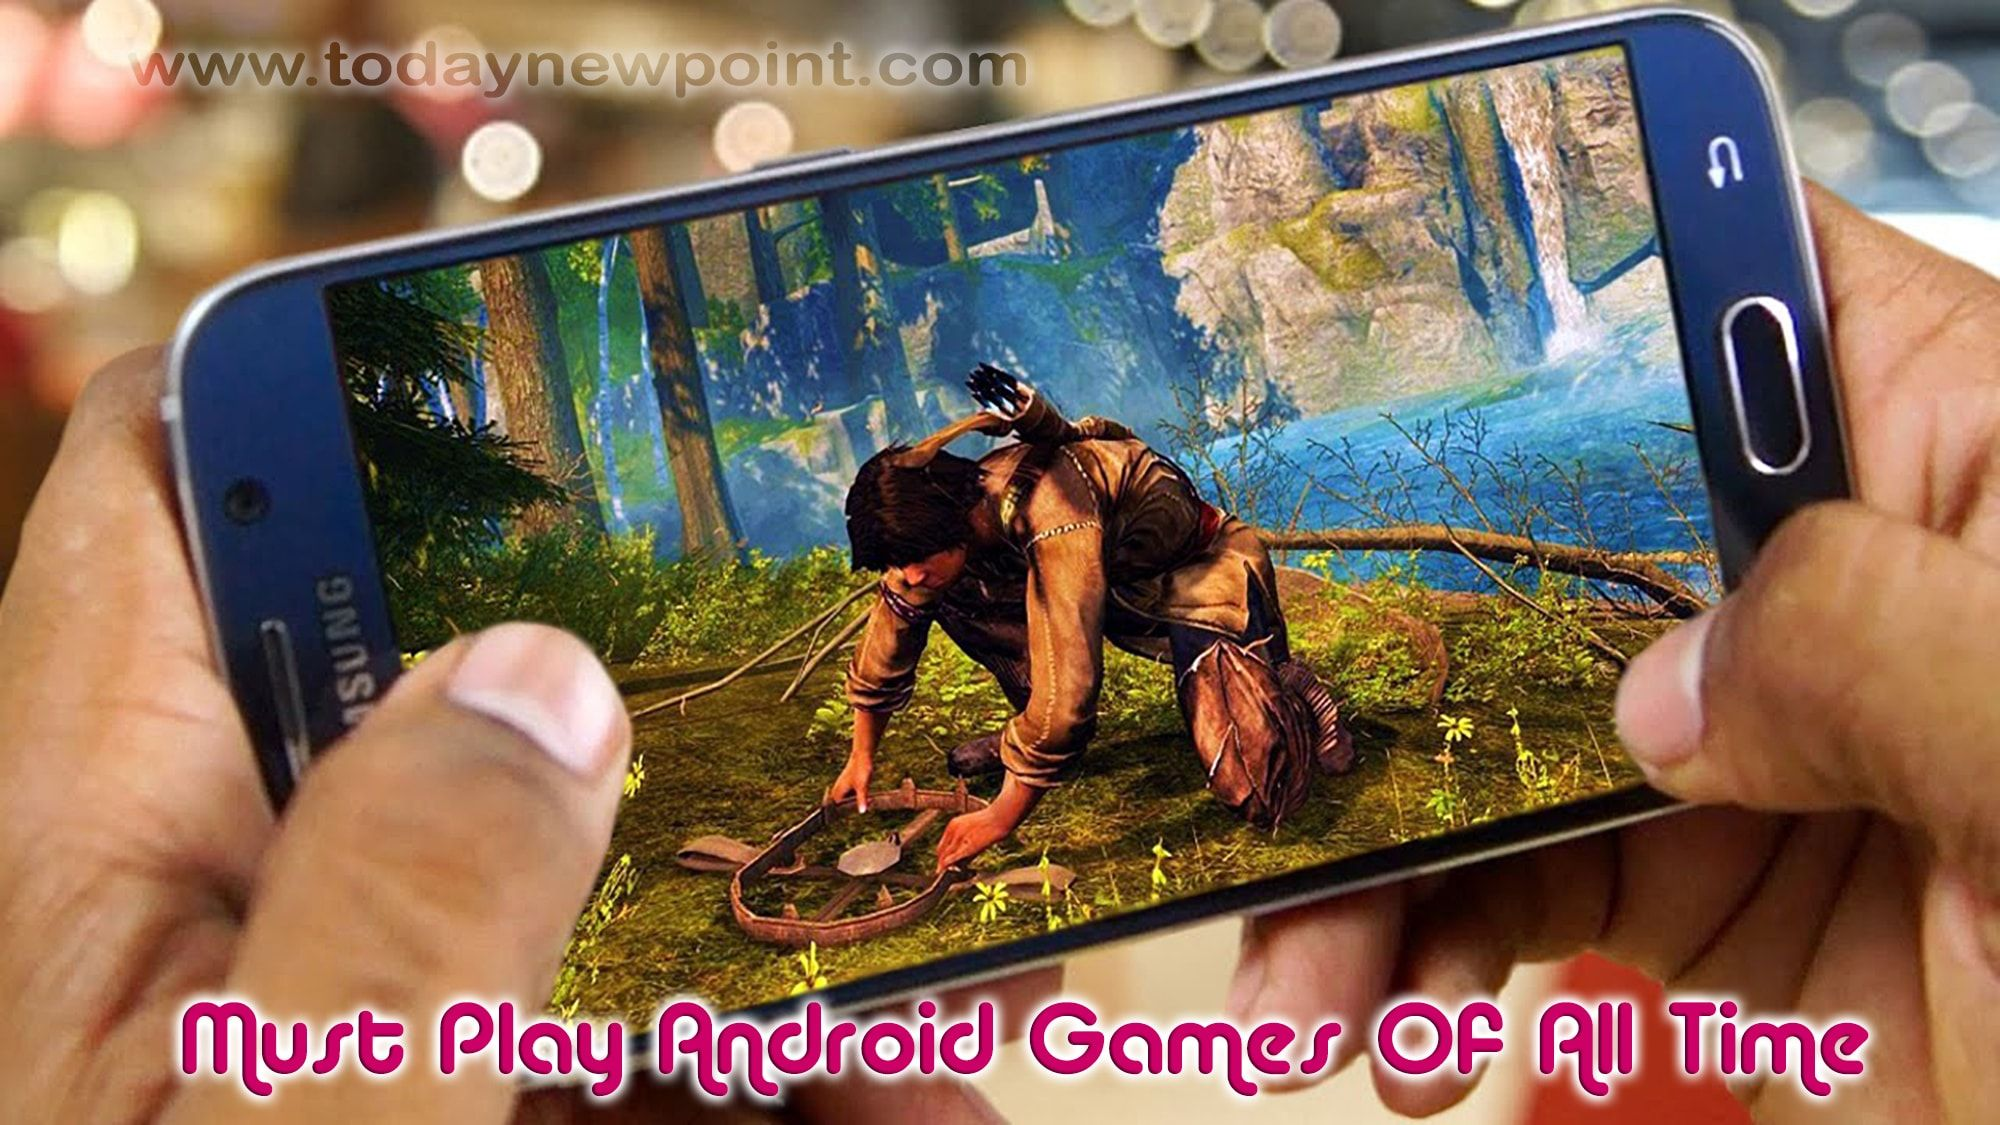 Must Play Android Games Of All Time Tips & Tricks Today